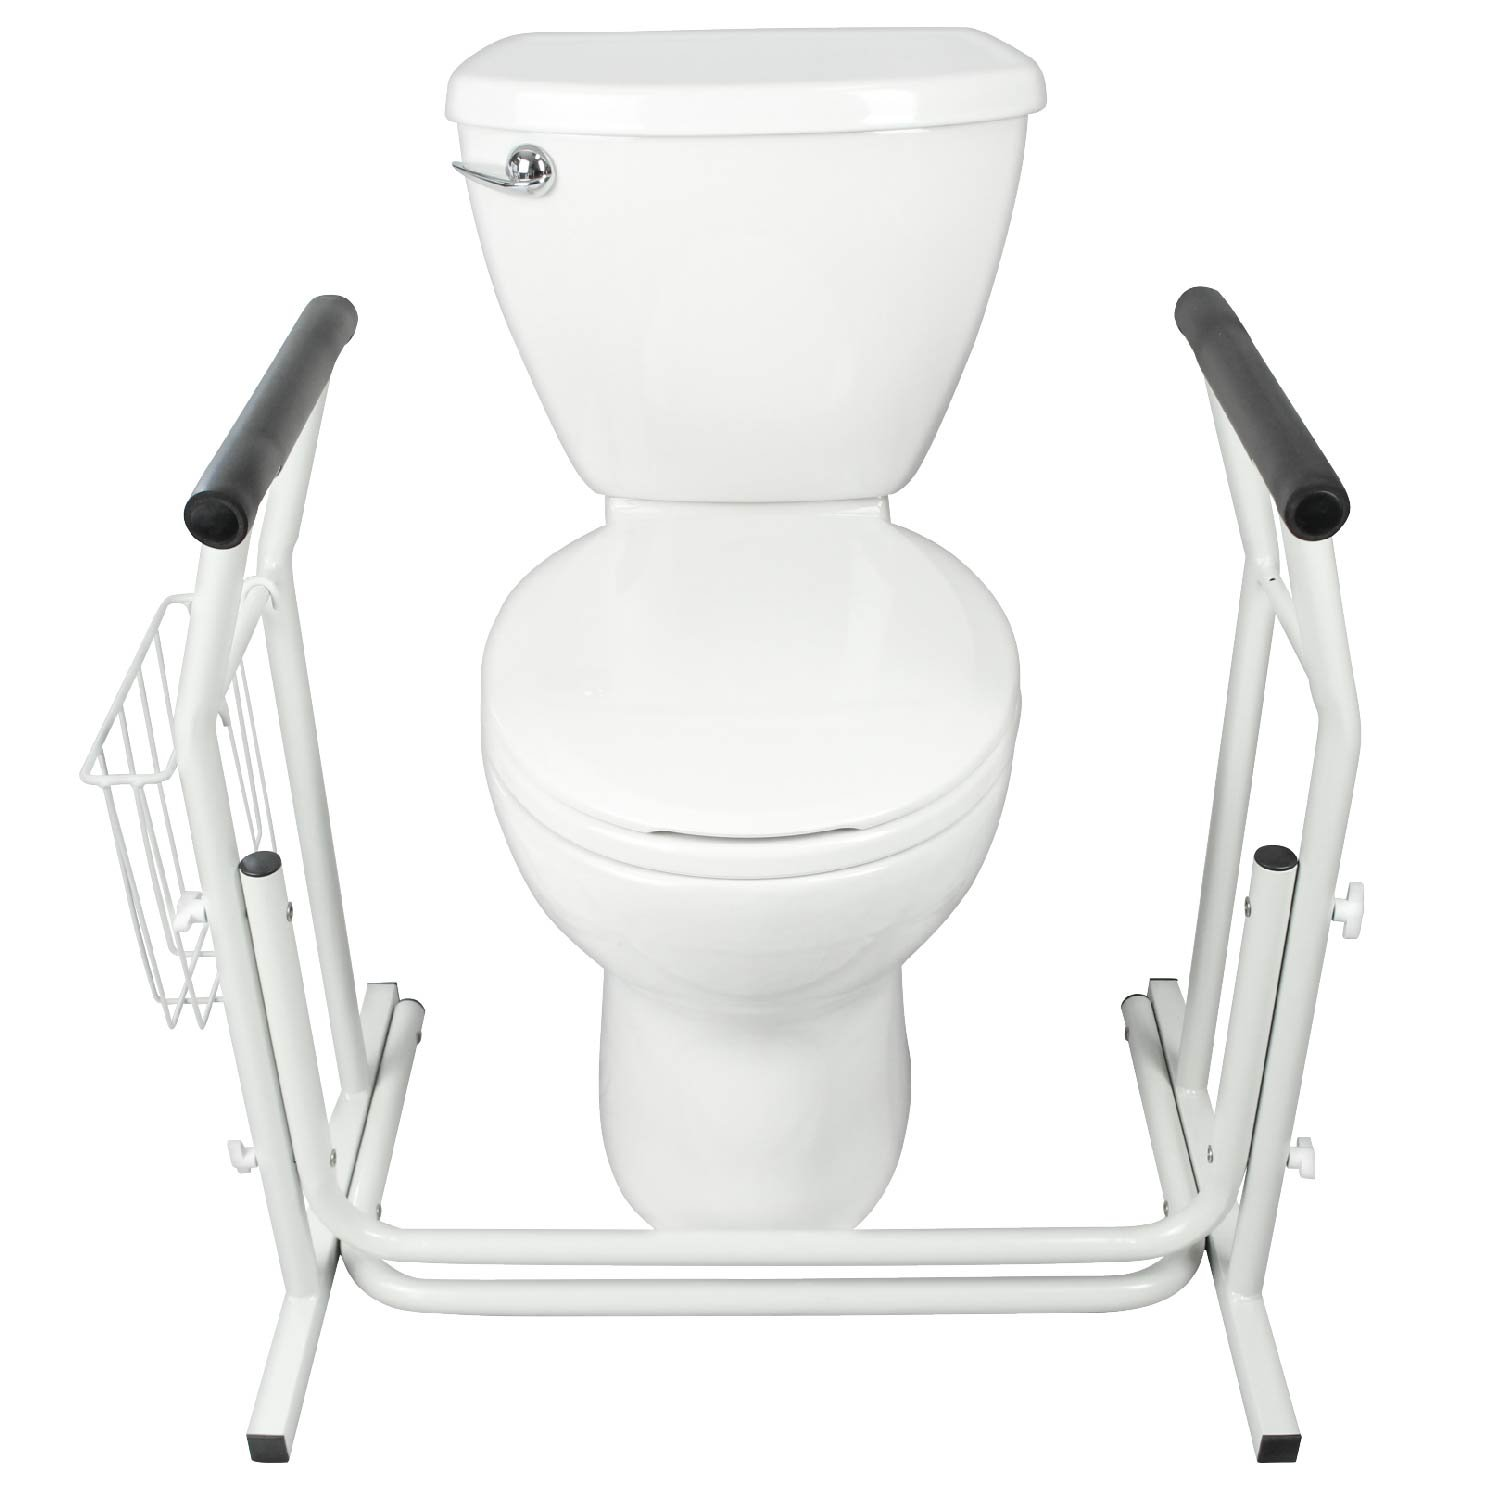 Best Rated in Toilet Assistance & Safety Aids & Helpful Customer ...